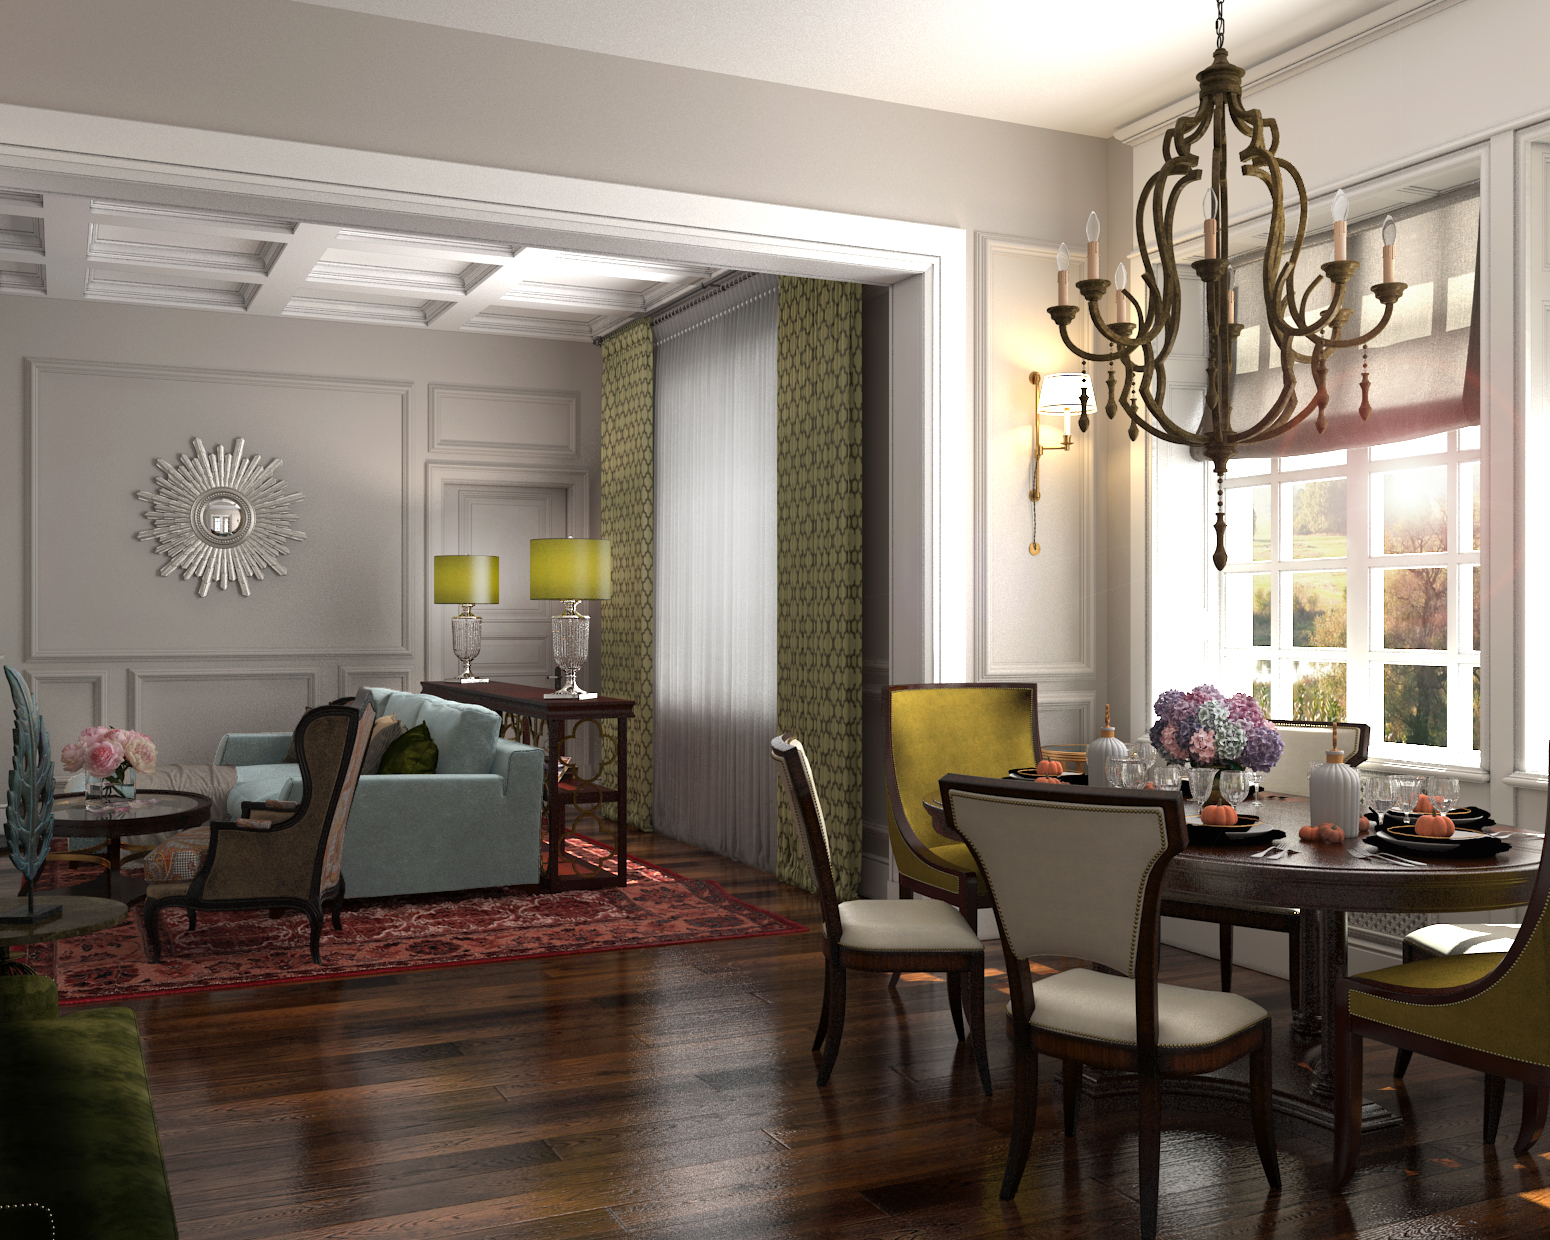 Super Darya Girina Interior Design Project Of Interiors At Private Largest Home Design Picture Inspirations Pitcheantrous